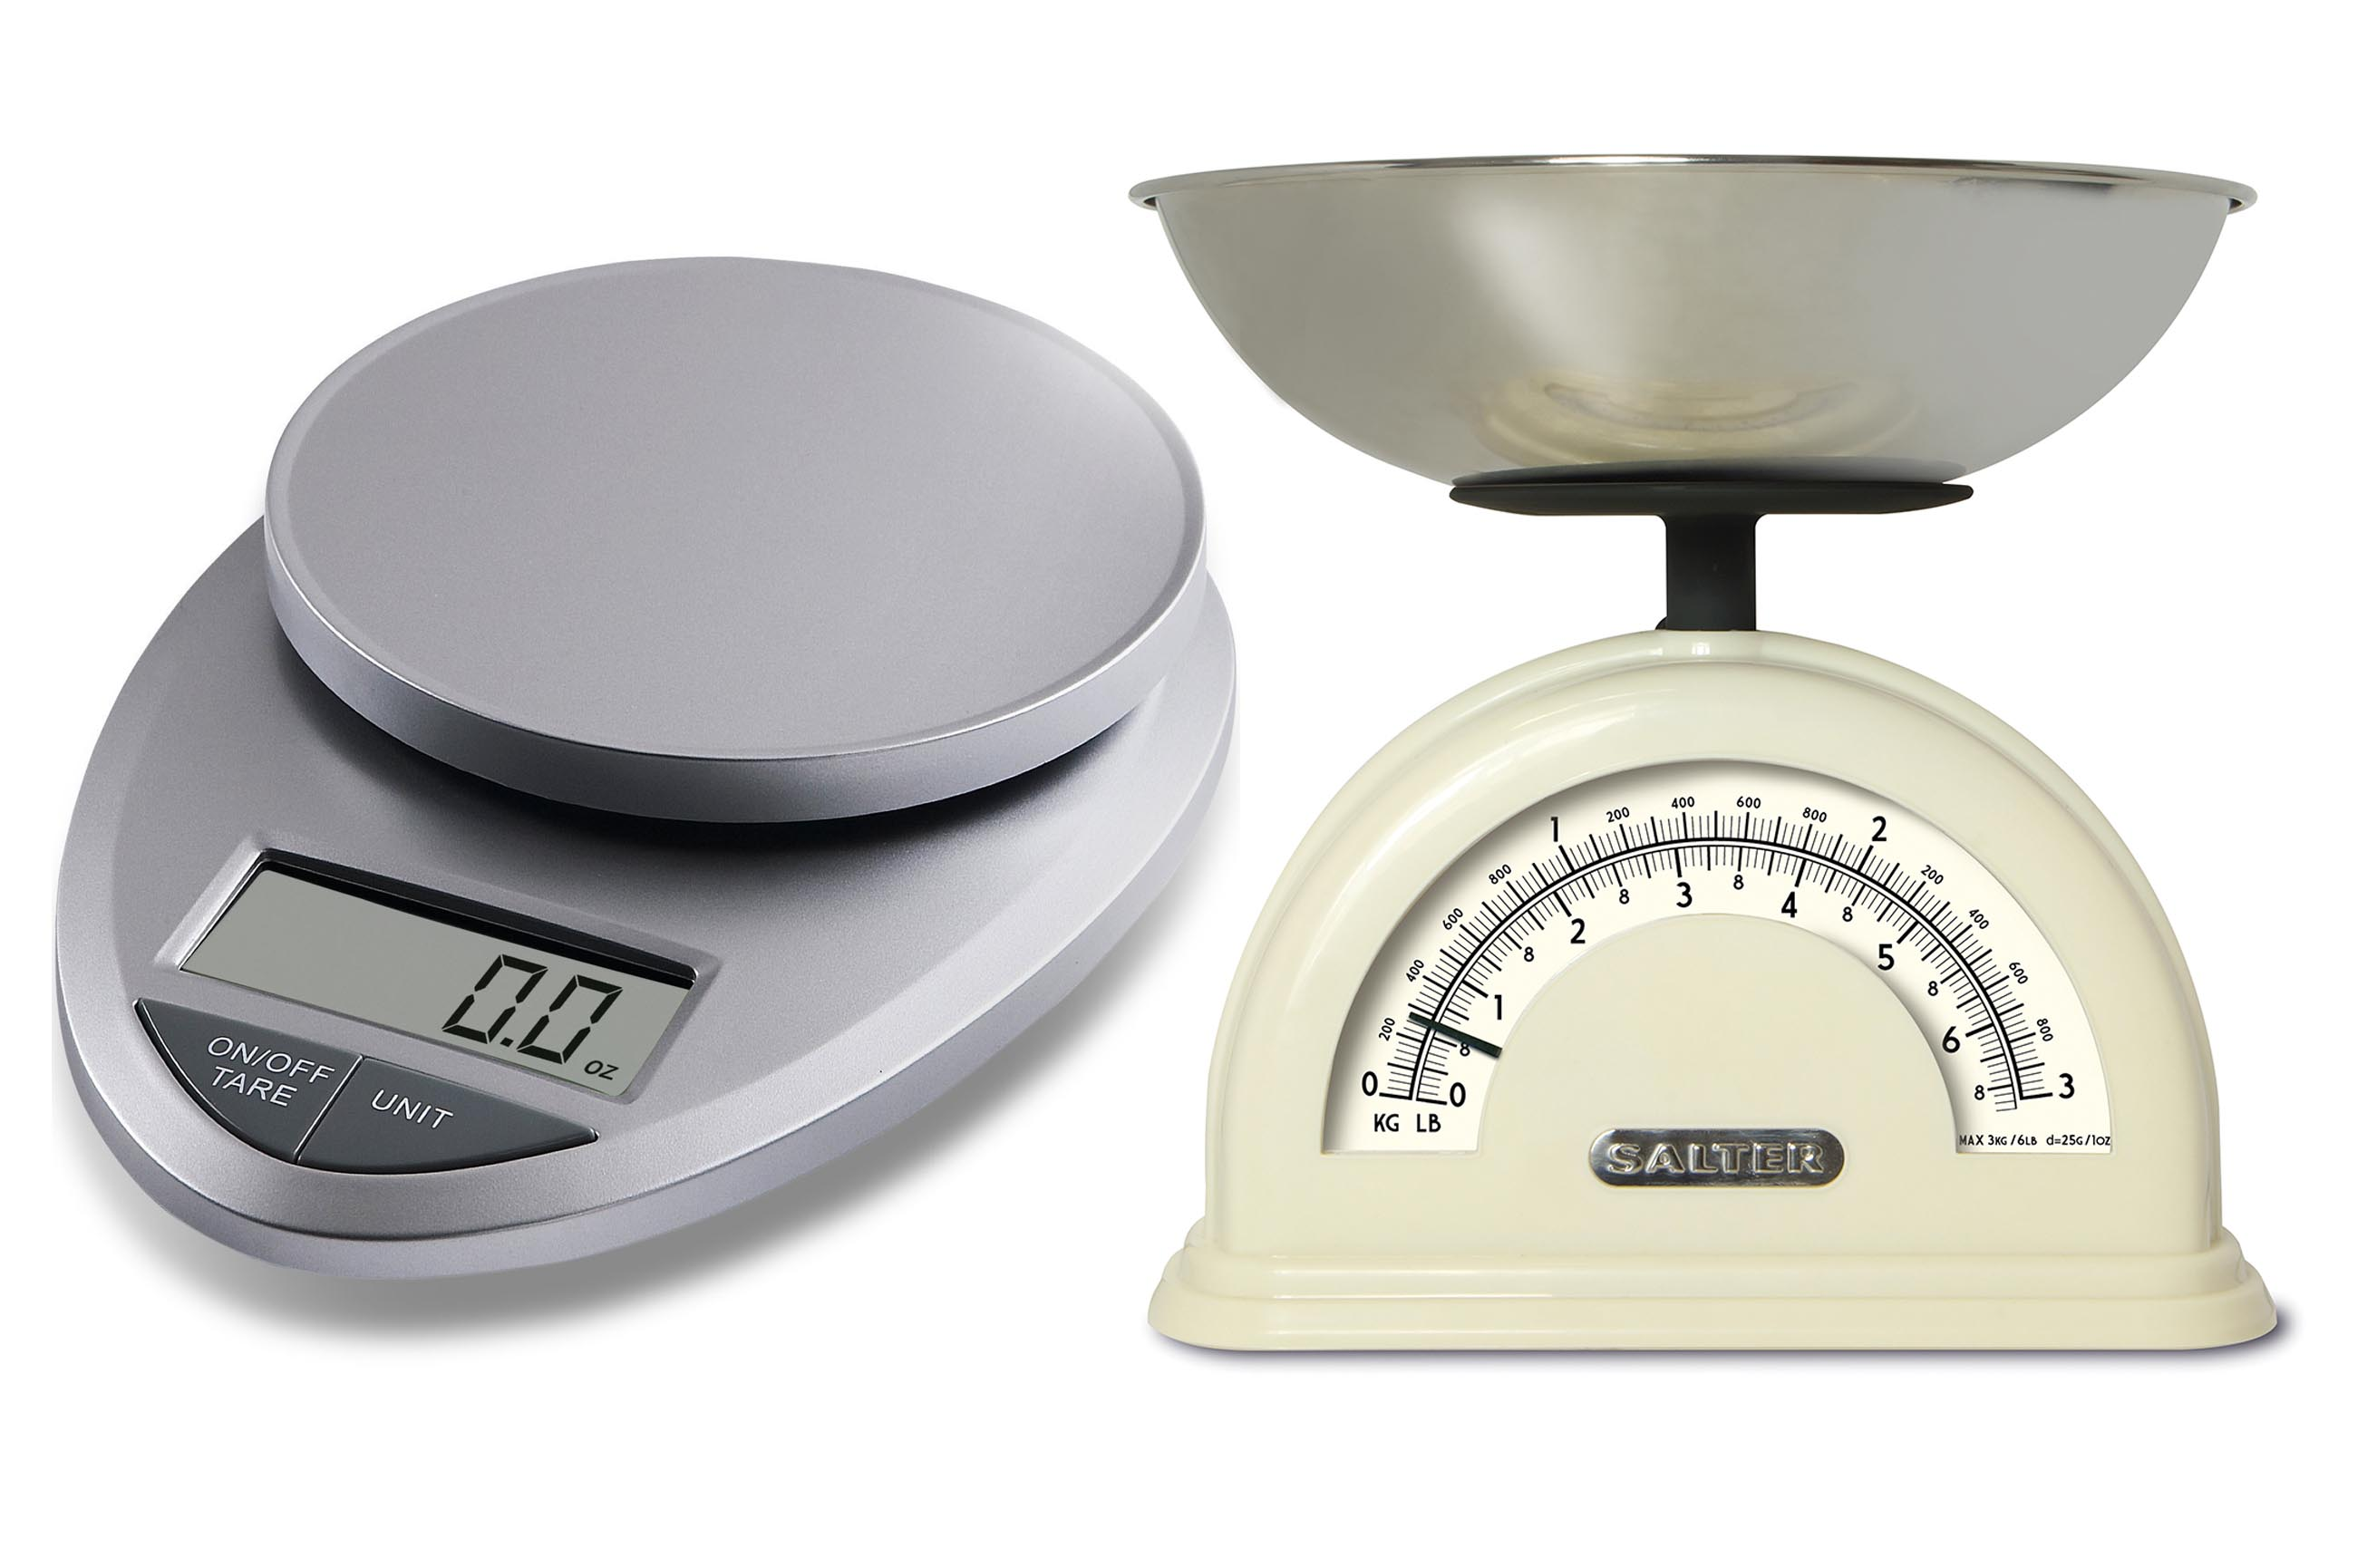 Basic ounces to grams weight conversions errens kitchen basic ounces to grams weight conversions here is a handy conversion chart for ounces to grams weight conversions nvjuhfo Image collections